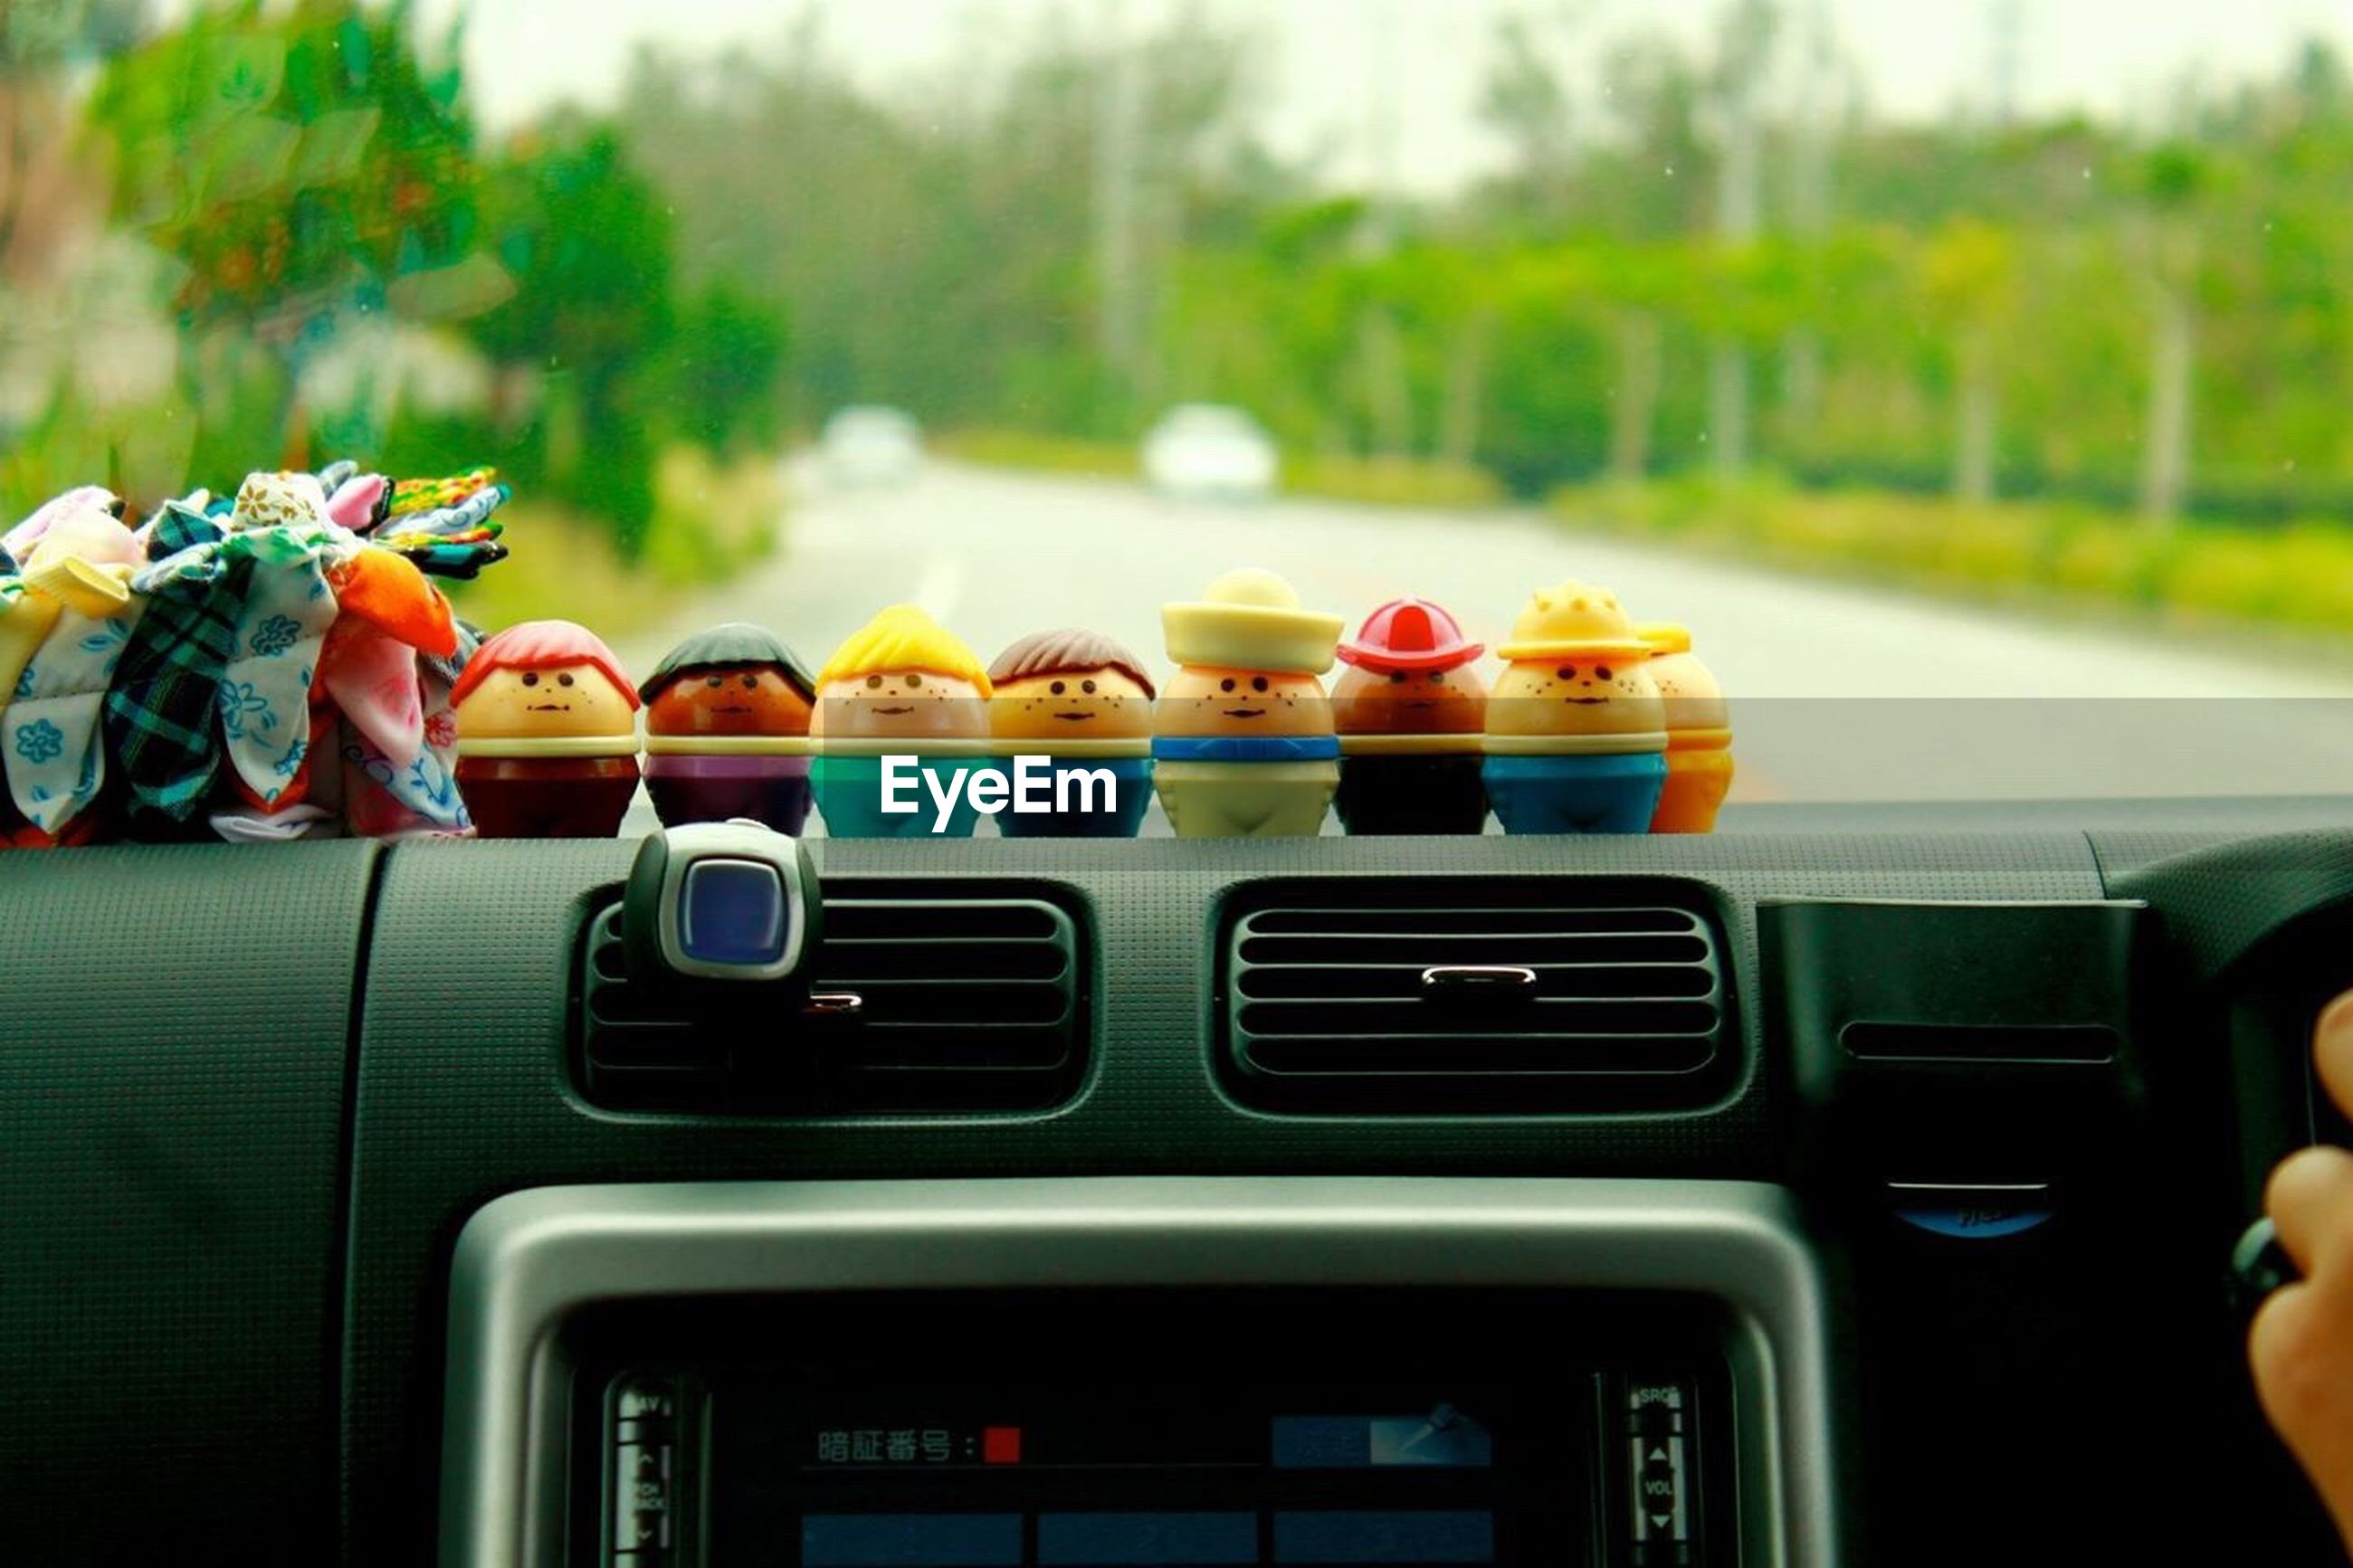 focus on foreground, transportation, car, land vehicle, mode of transport, part of, close-up, incidental people, cropped, leisure activity, person, selective focus, lifestyles, day, tree, unrecognizable person, vehicle interior